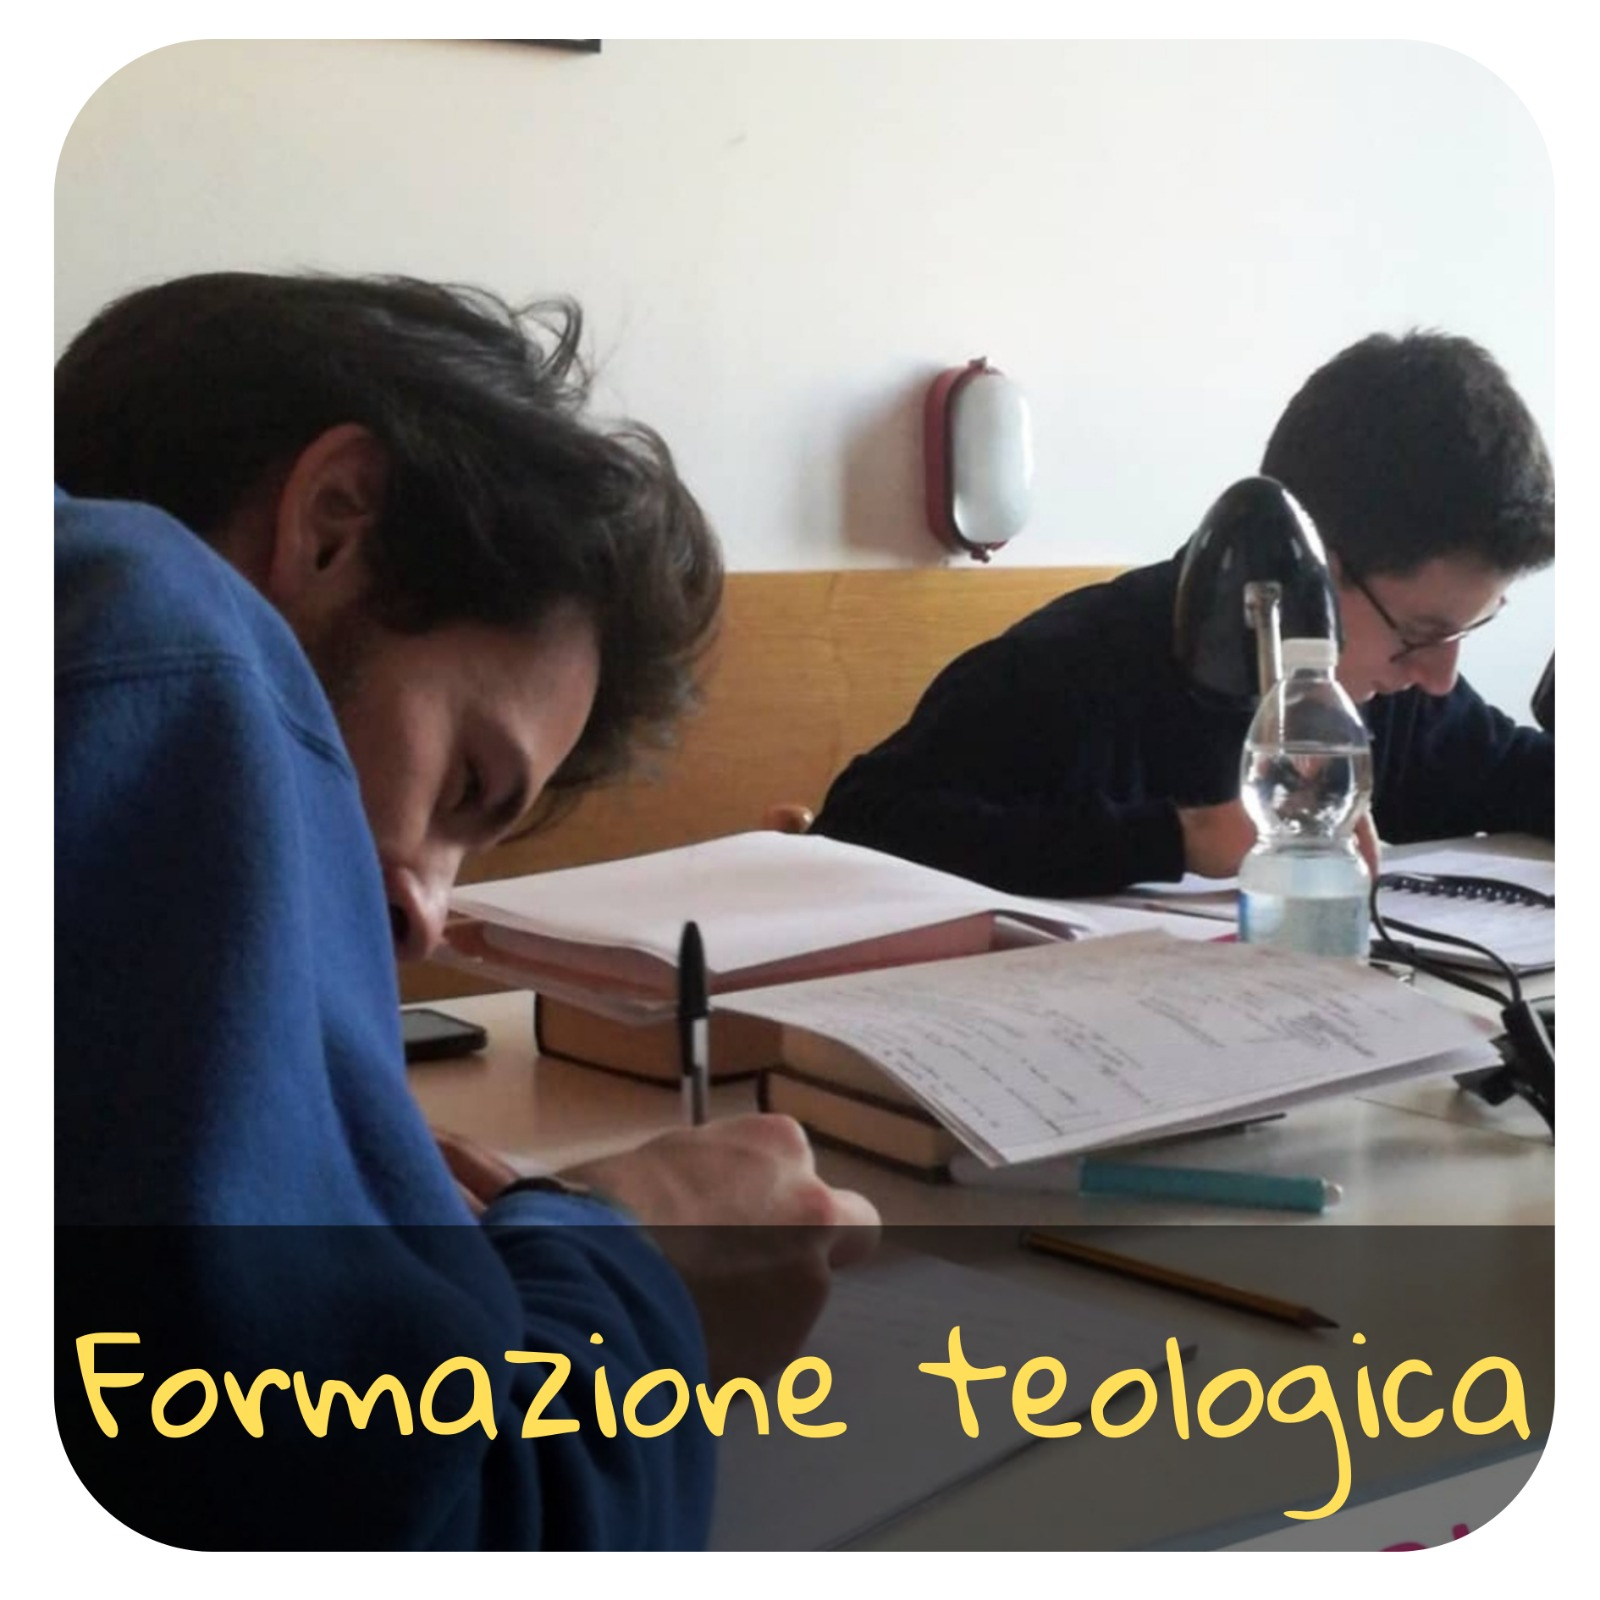 form teologica